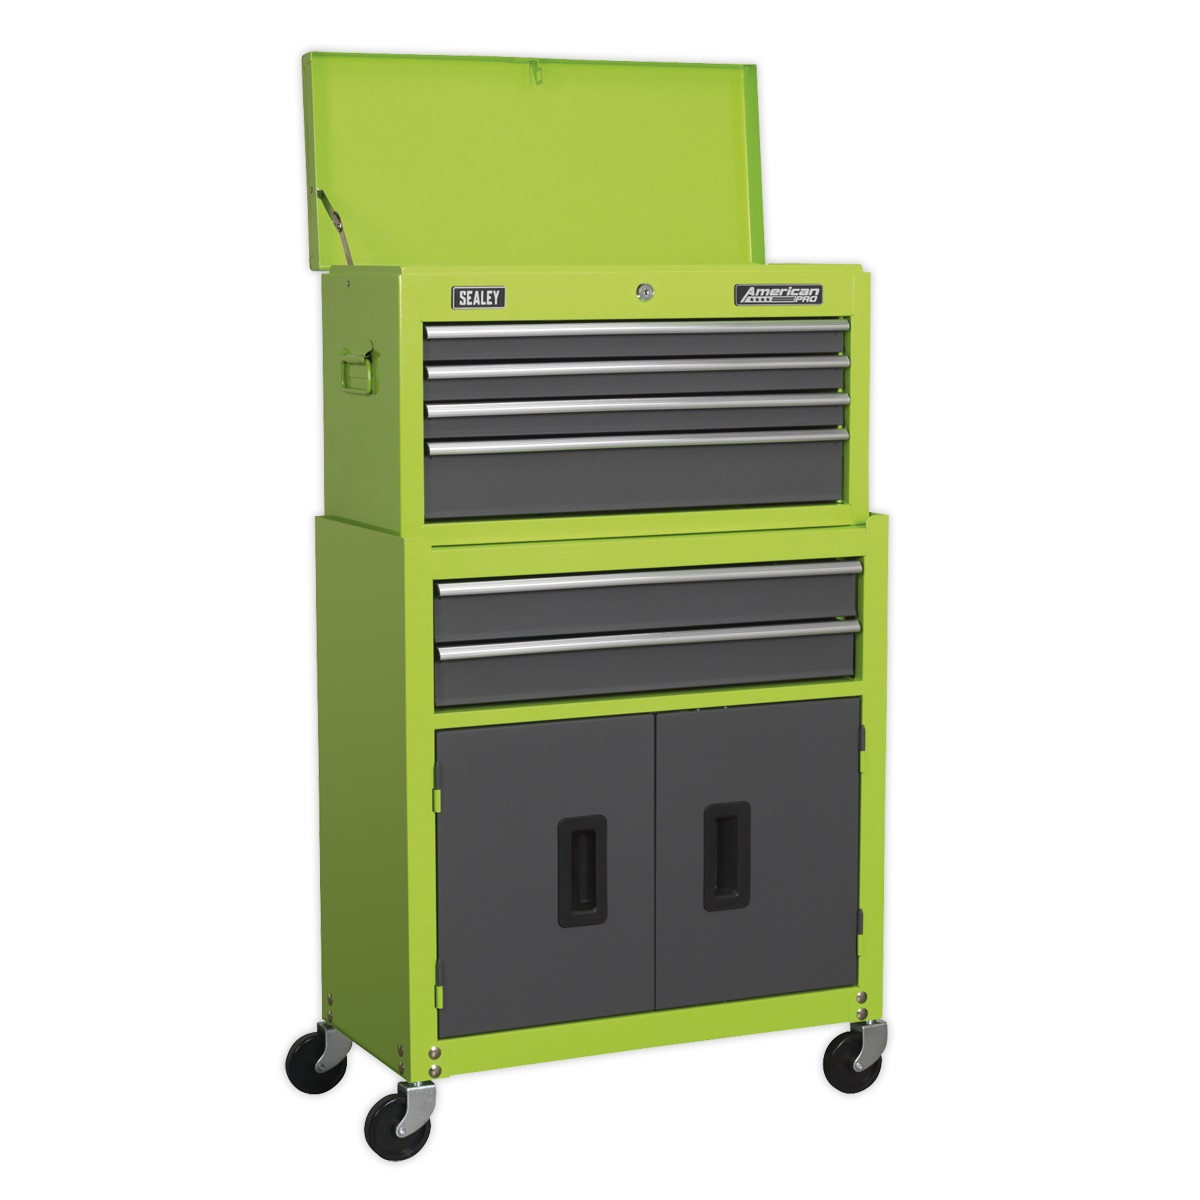 Sealey Topchest & Rollcab Combination 6 Drawer with Ball-Bearing Slides - Hi-Vis Green/Grey AP2200BBHV The economical way to buy American PRO® Ball-Bearing quality tool chests. Supplied packed one inside the other.